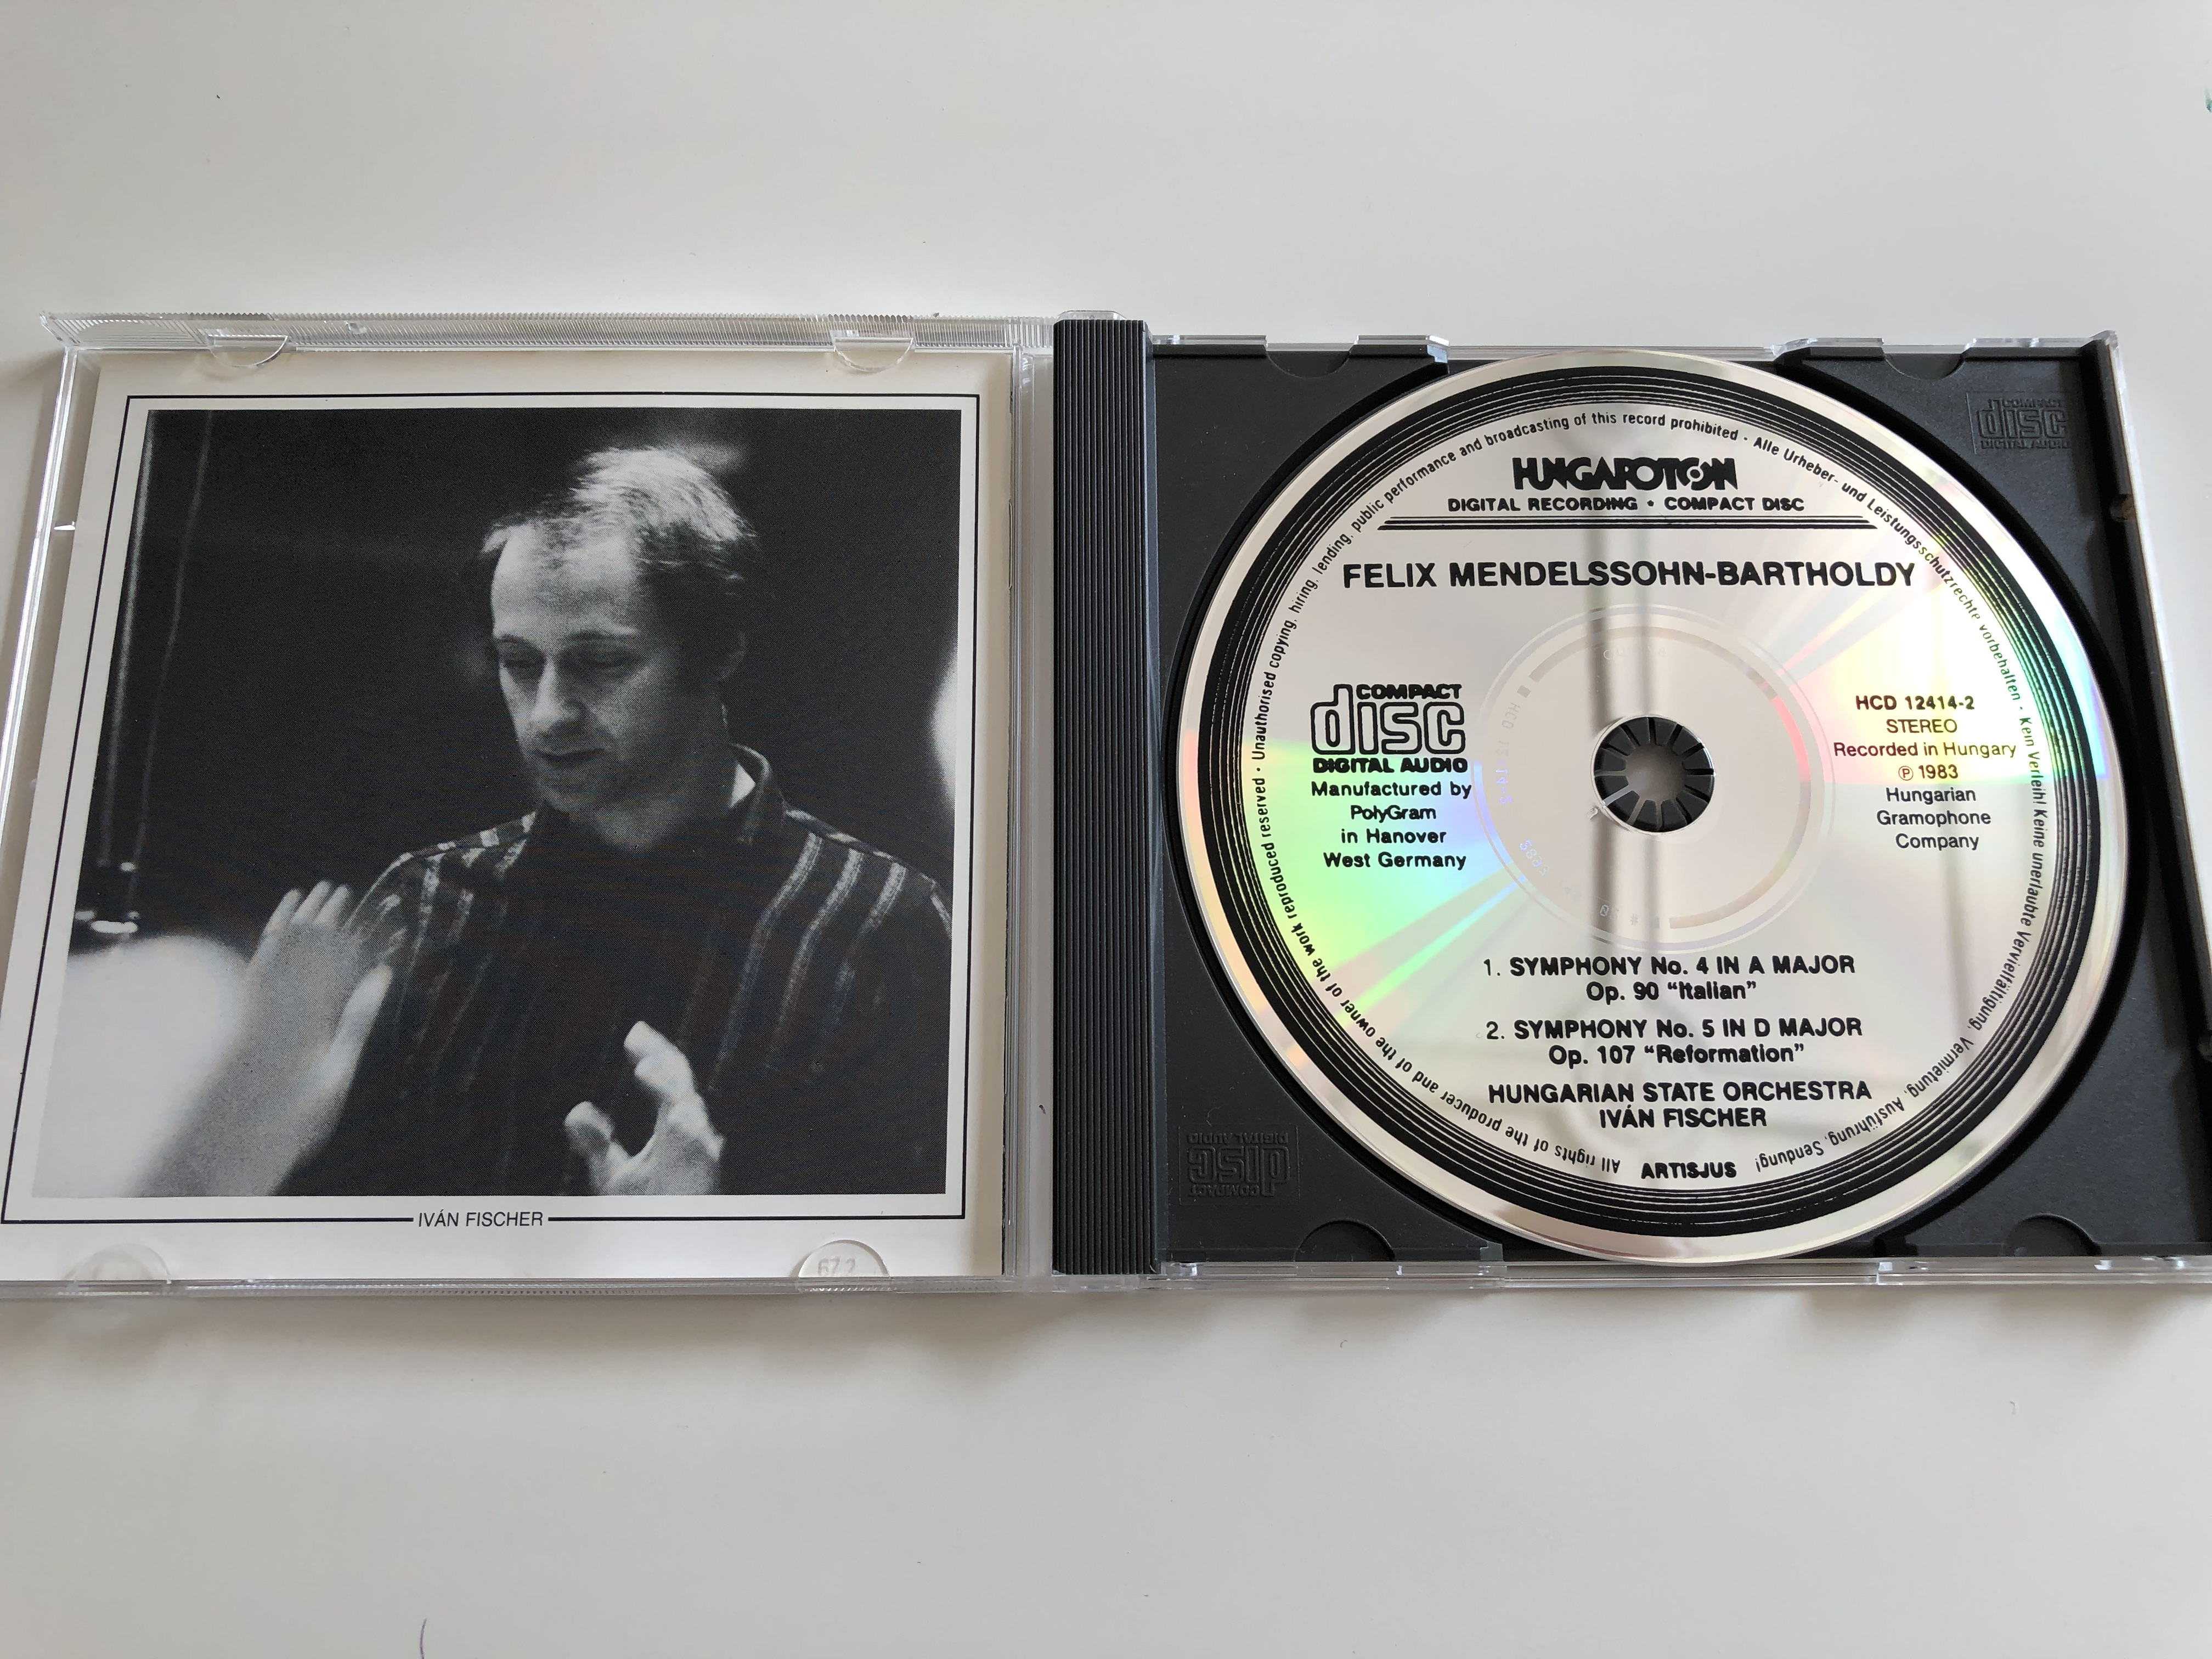 mendelssohn-symphony-no.-4-italian-symphony-no.-5-reformation-hungarian-state-orchestra-conducted-by-iv-n-fischer-hungaroton-audio-cd-1983-hcd-12414-2-5-.jpg